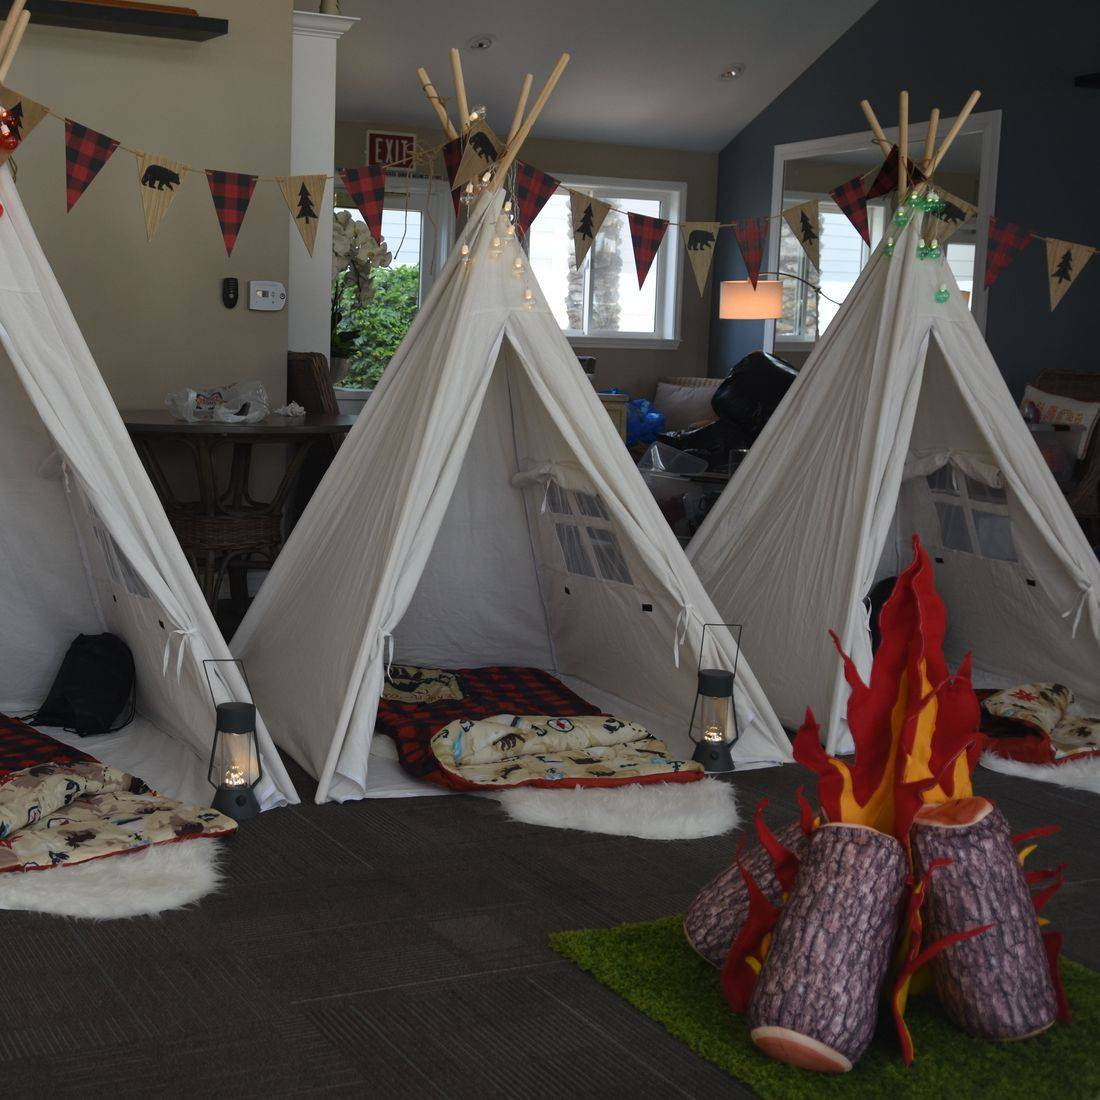 Kids party rentals, teepee rentals, party rentals, Happy Campers, Happy Glampers, birthday, kids, teepees, indoor, campsite, campsites, fun, adventure, new, s'mores, Newport Beach, CA, Orange County